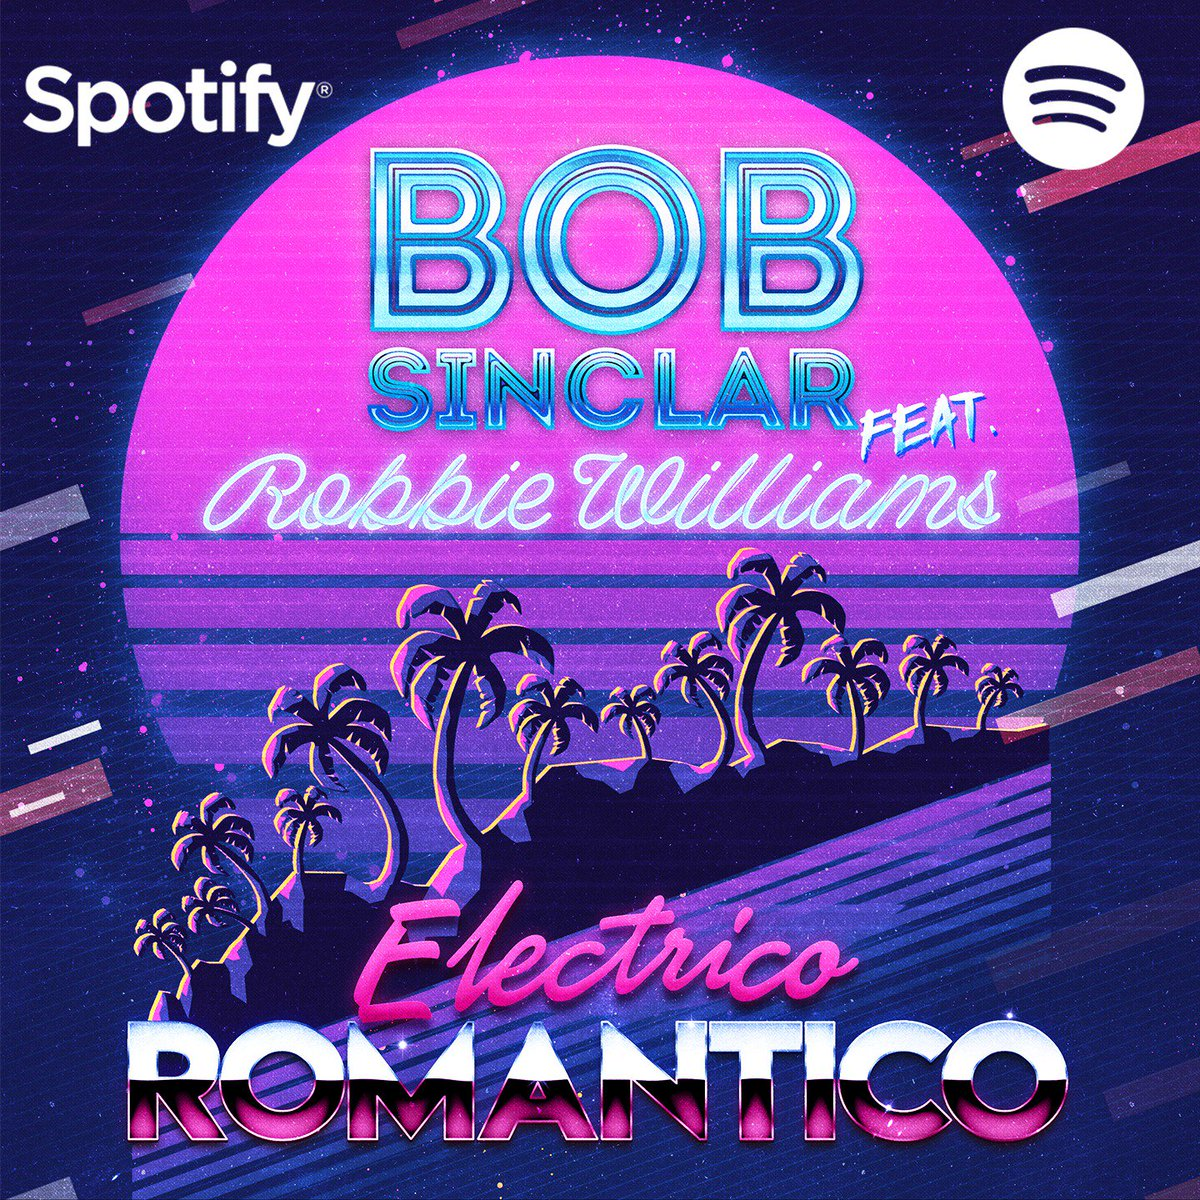 'Electrico Romantico' is OUT NOW!! 🔥 Thanks @Spotify for including the track in New Music Friday!!  https://t.co/gCMj381RSy